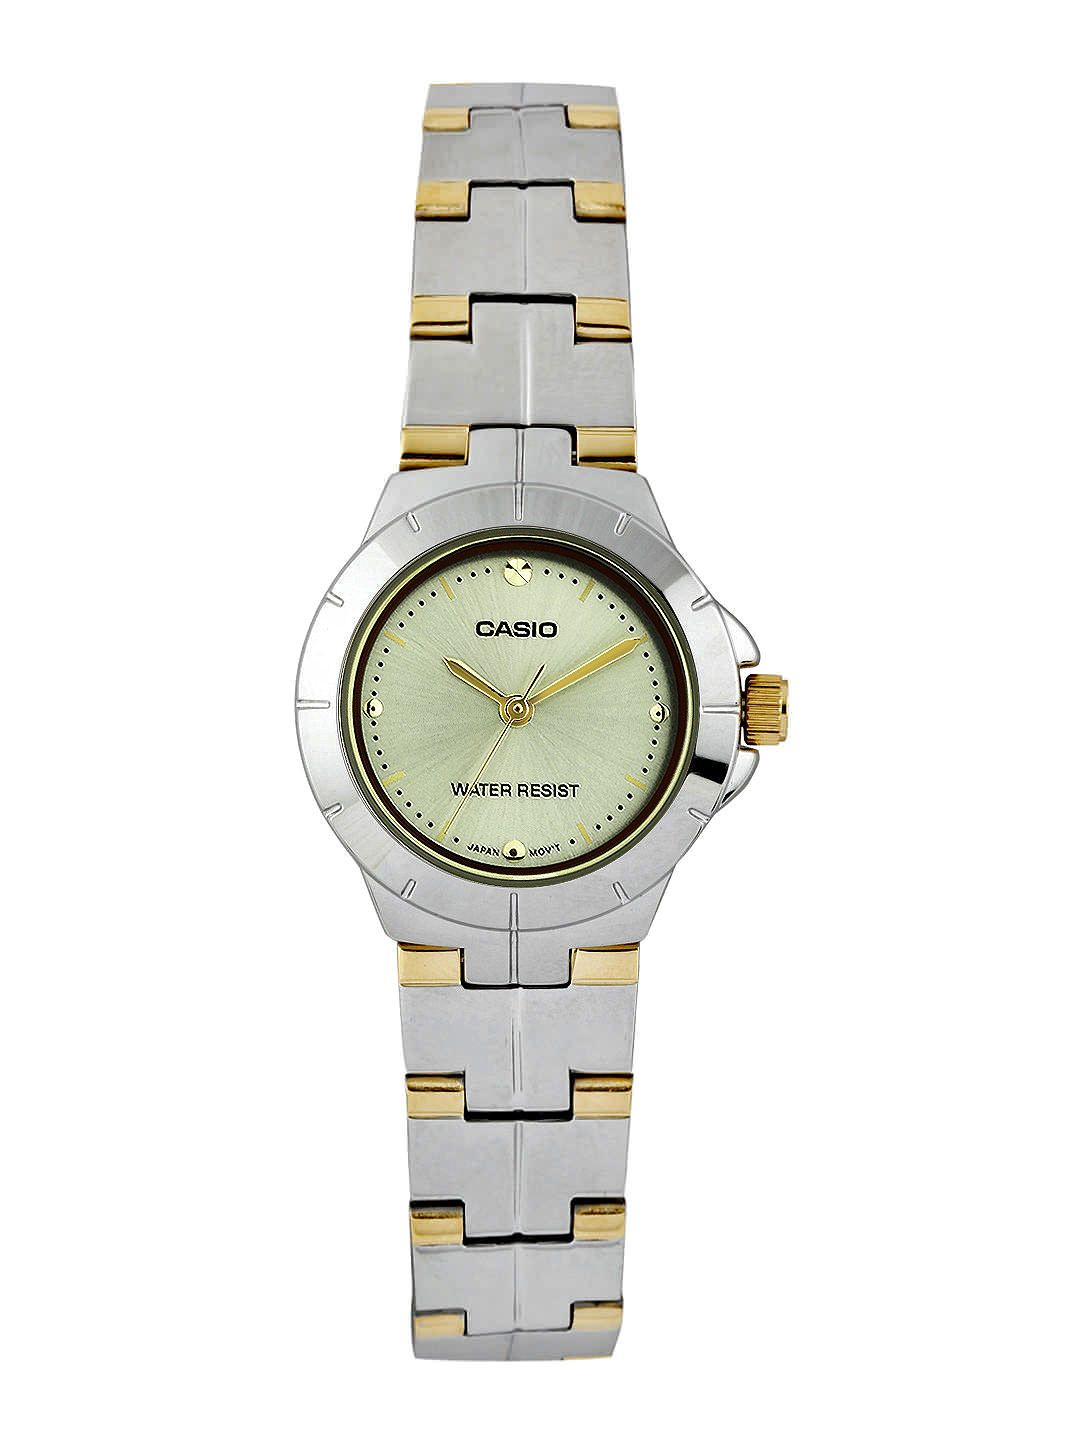 Casio Enticer Women Muted Gold-Toned Dial Watch A908